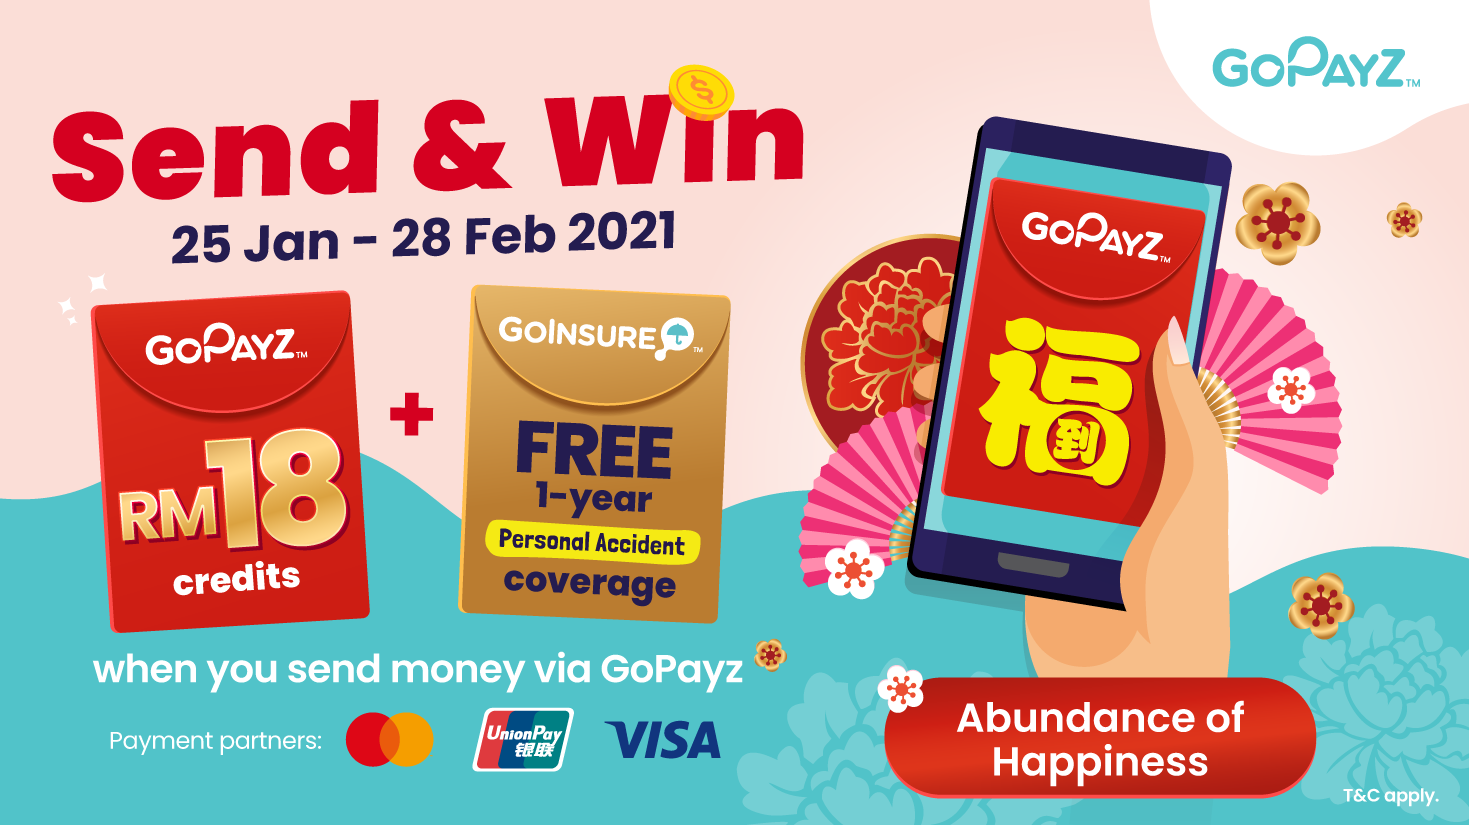 GoPayz Users - Stand a Chance to Win Year-Long Insurance Coverage and GoPayz Credit